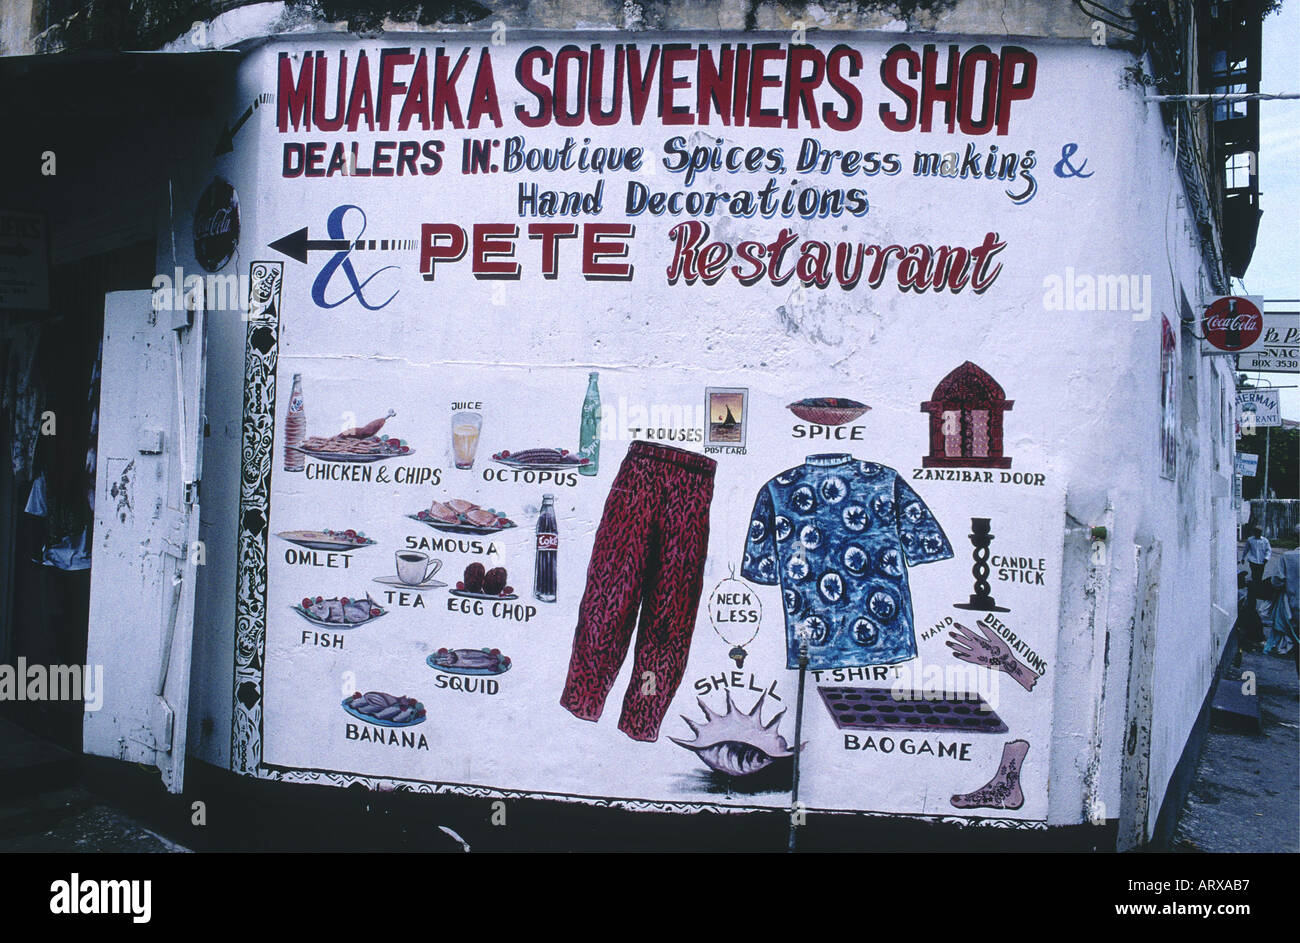 A colourful sign painted on a shop wall in the stone town Zanzibar Tanzania East Africa - Stock Image